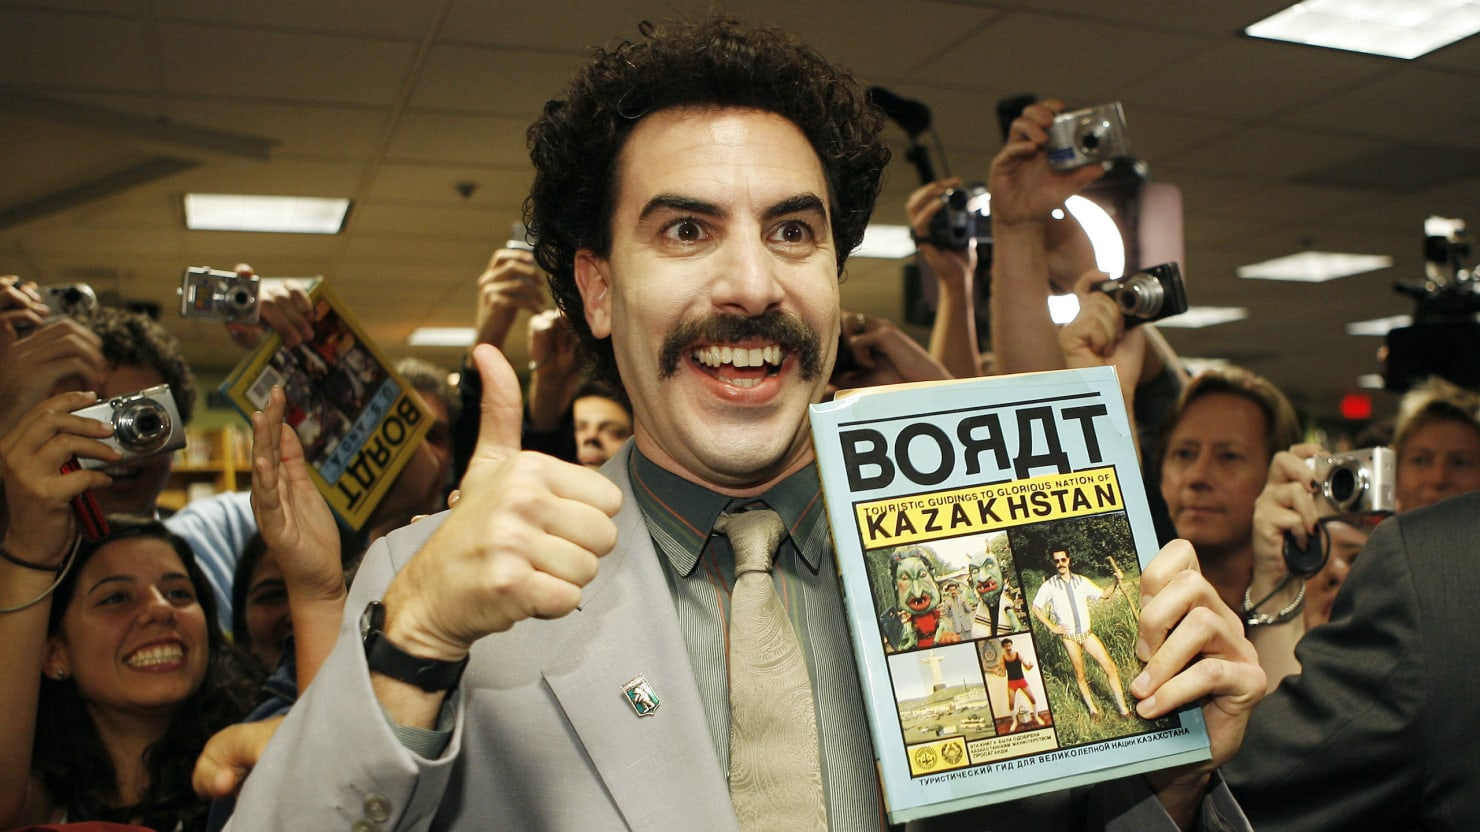 Sacha Baron Cohen Secretly Filmed a 'Borat' Sequel